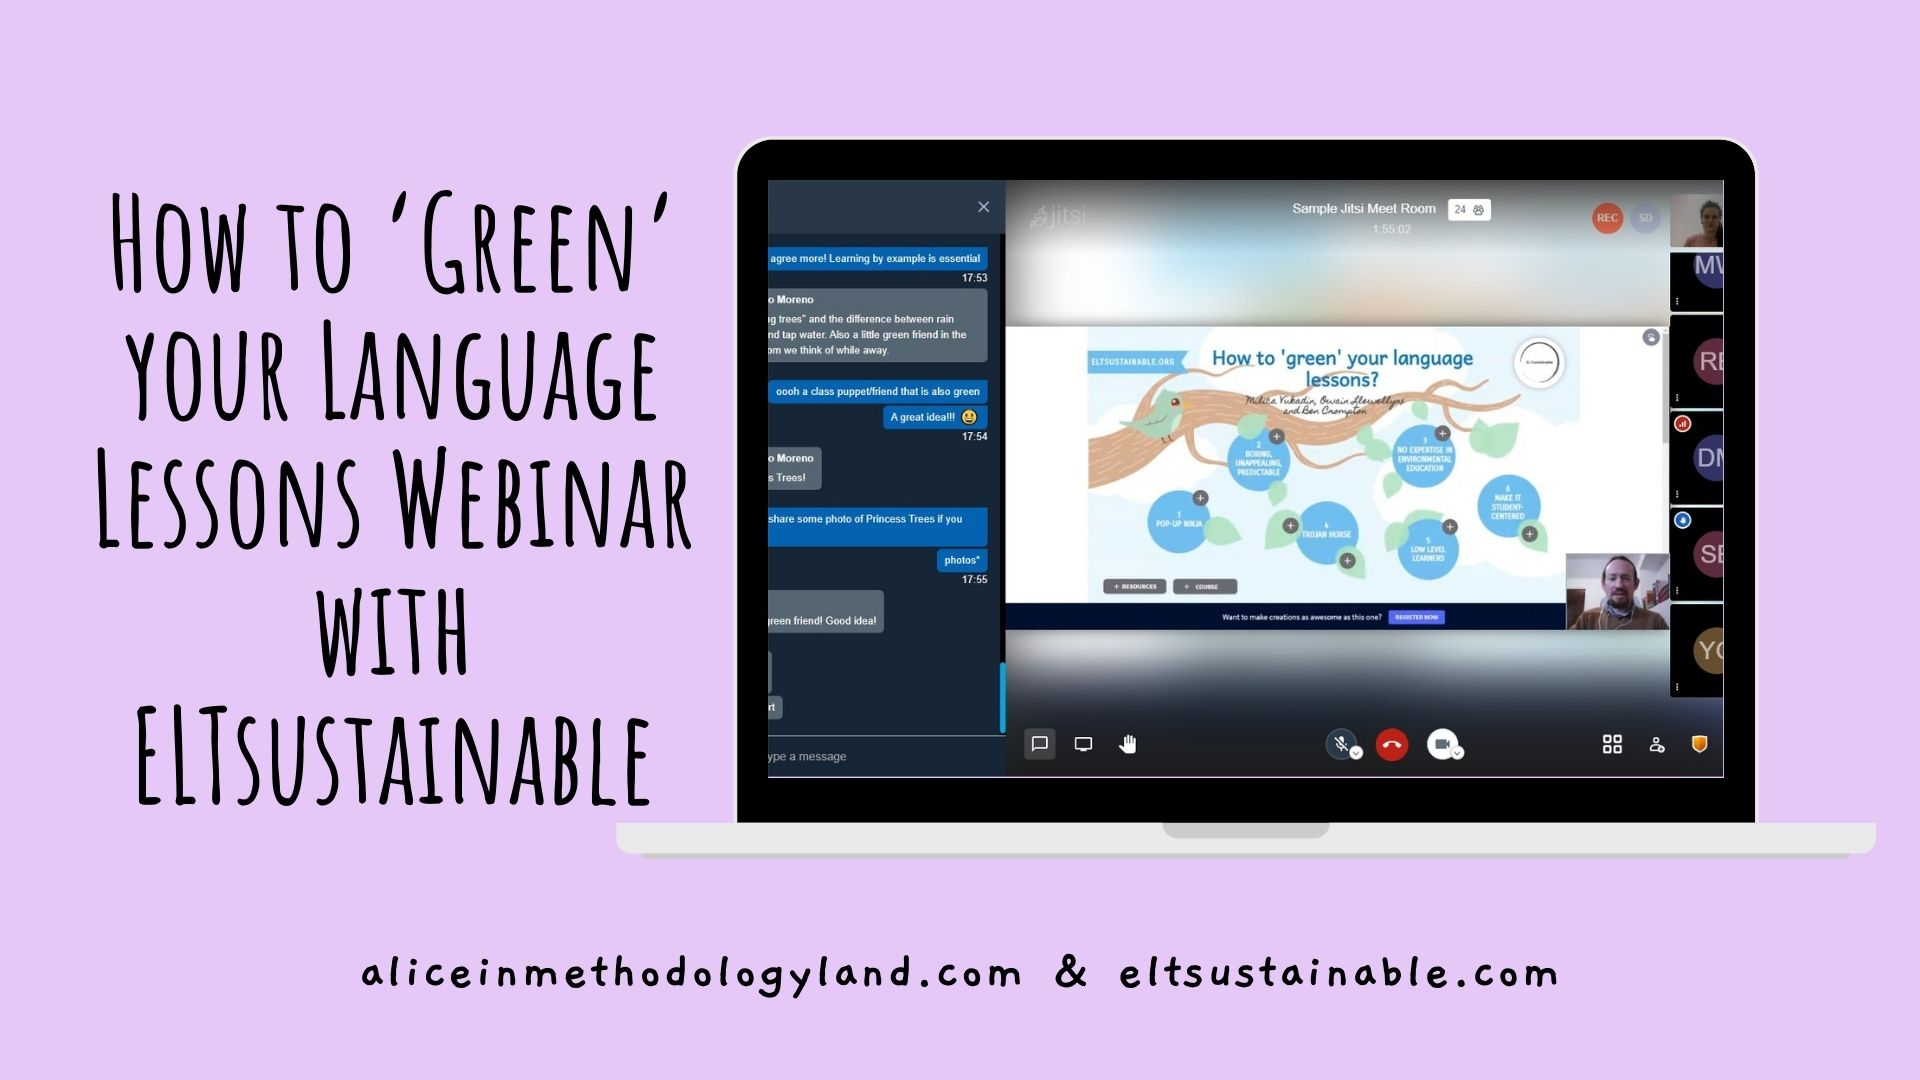 How to 'Green' your Language Lessons Webinar with ELTsustainable